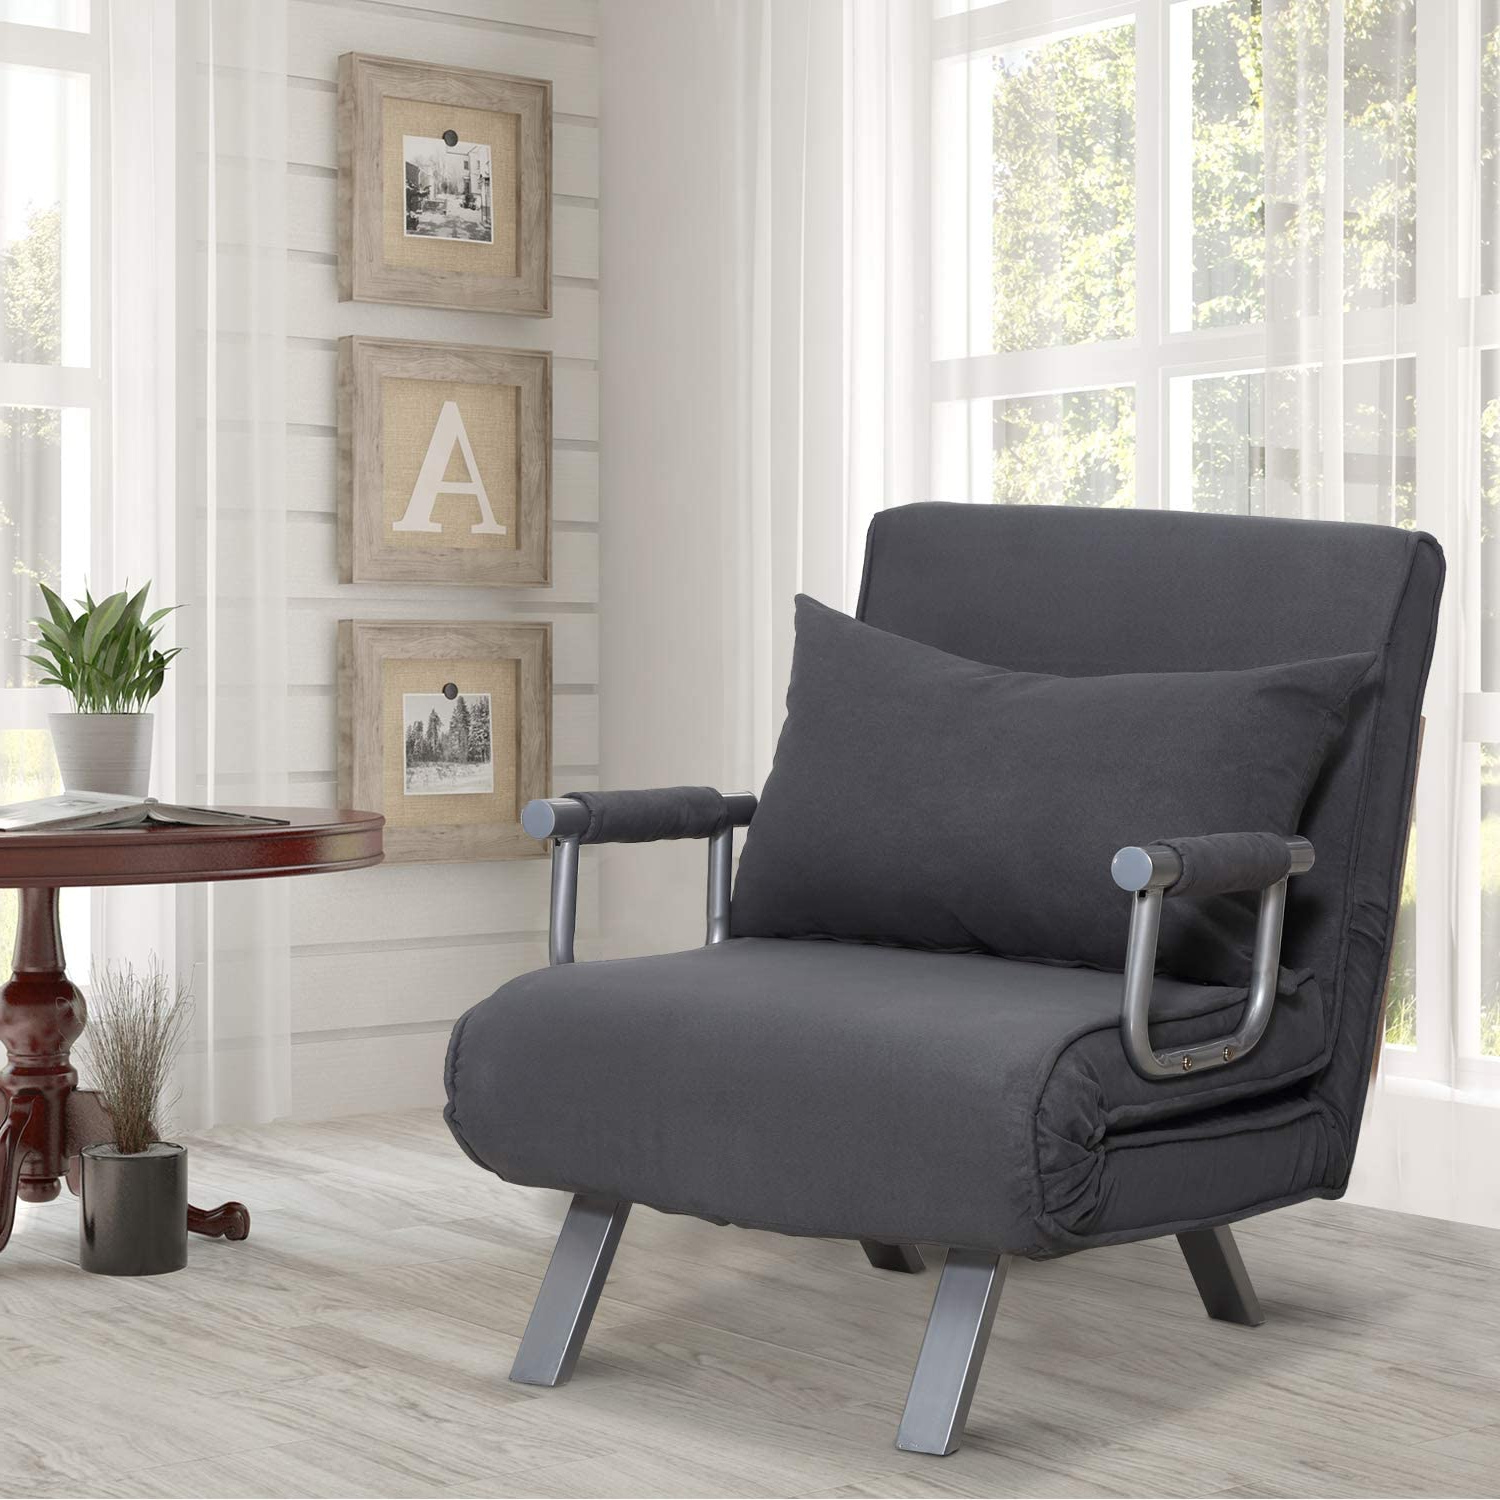 Popular New London Convertible Chairs For 18 Best Sleeper Chairs For Adults (View 8 of 20)